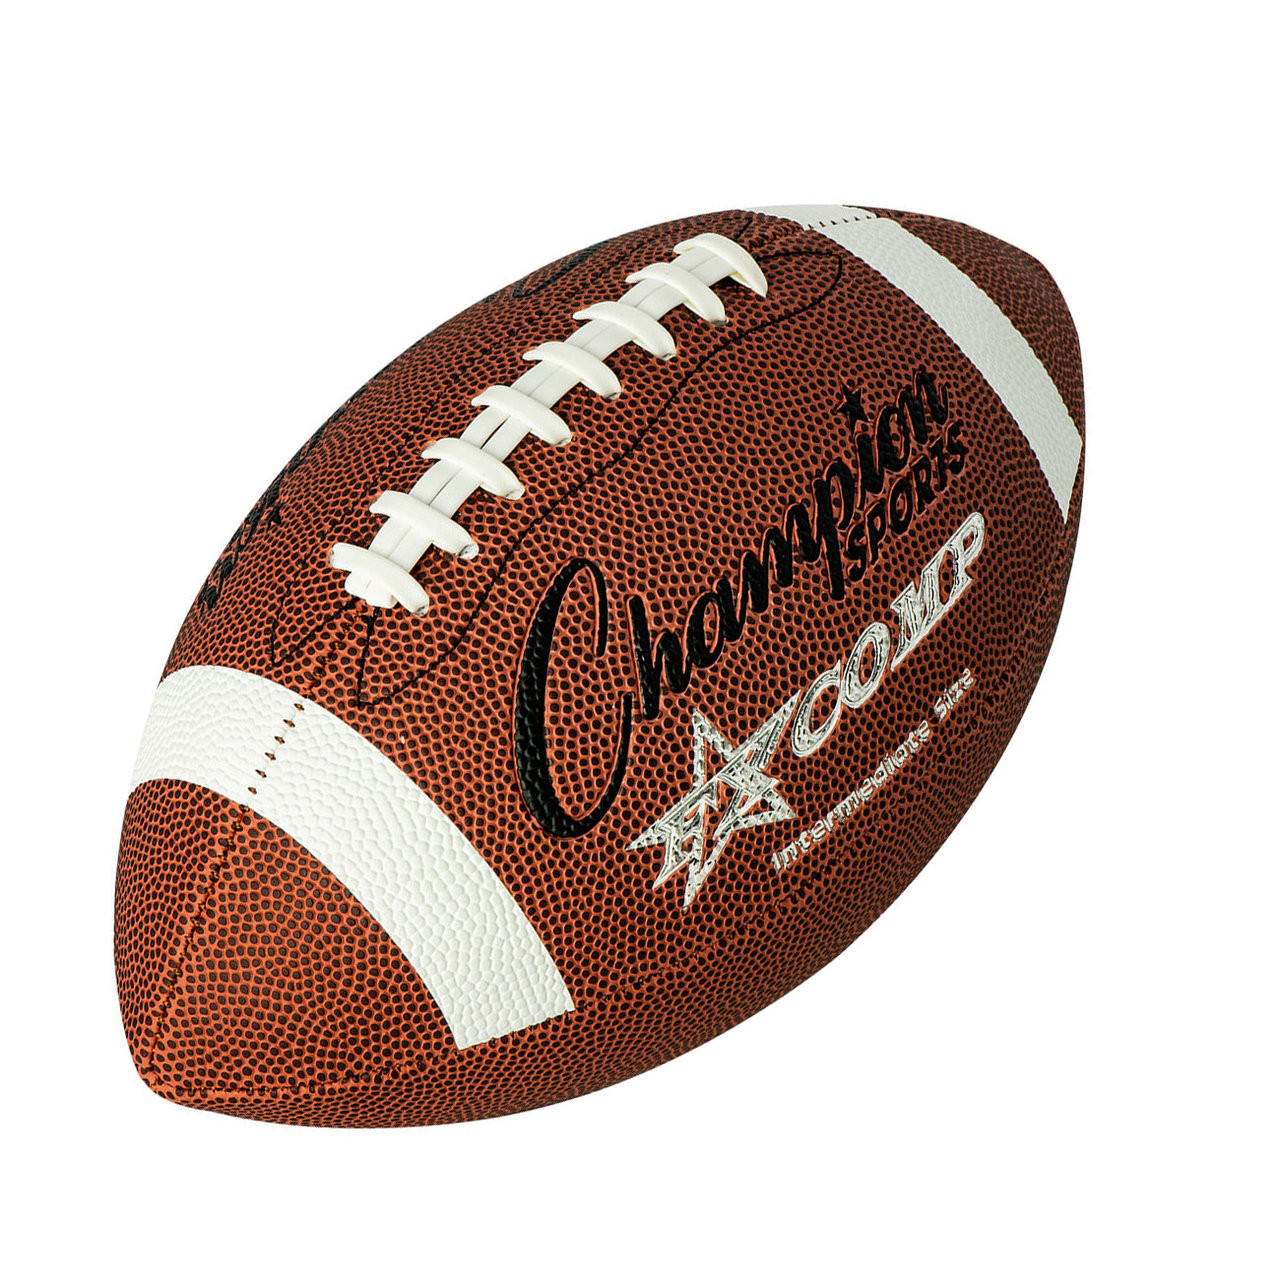 Champion Sports FX Series Composite Football - Intermediate Size